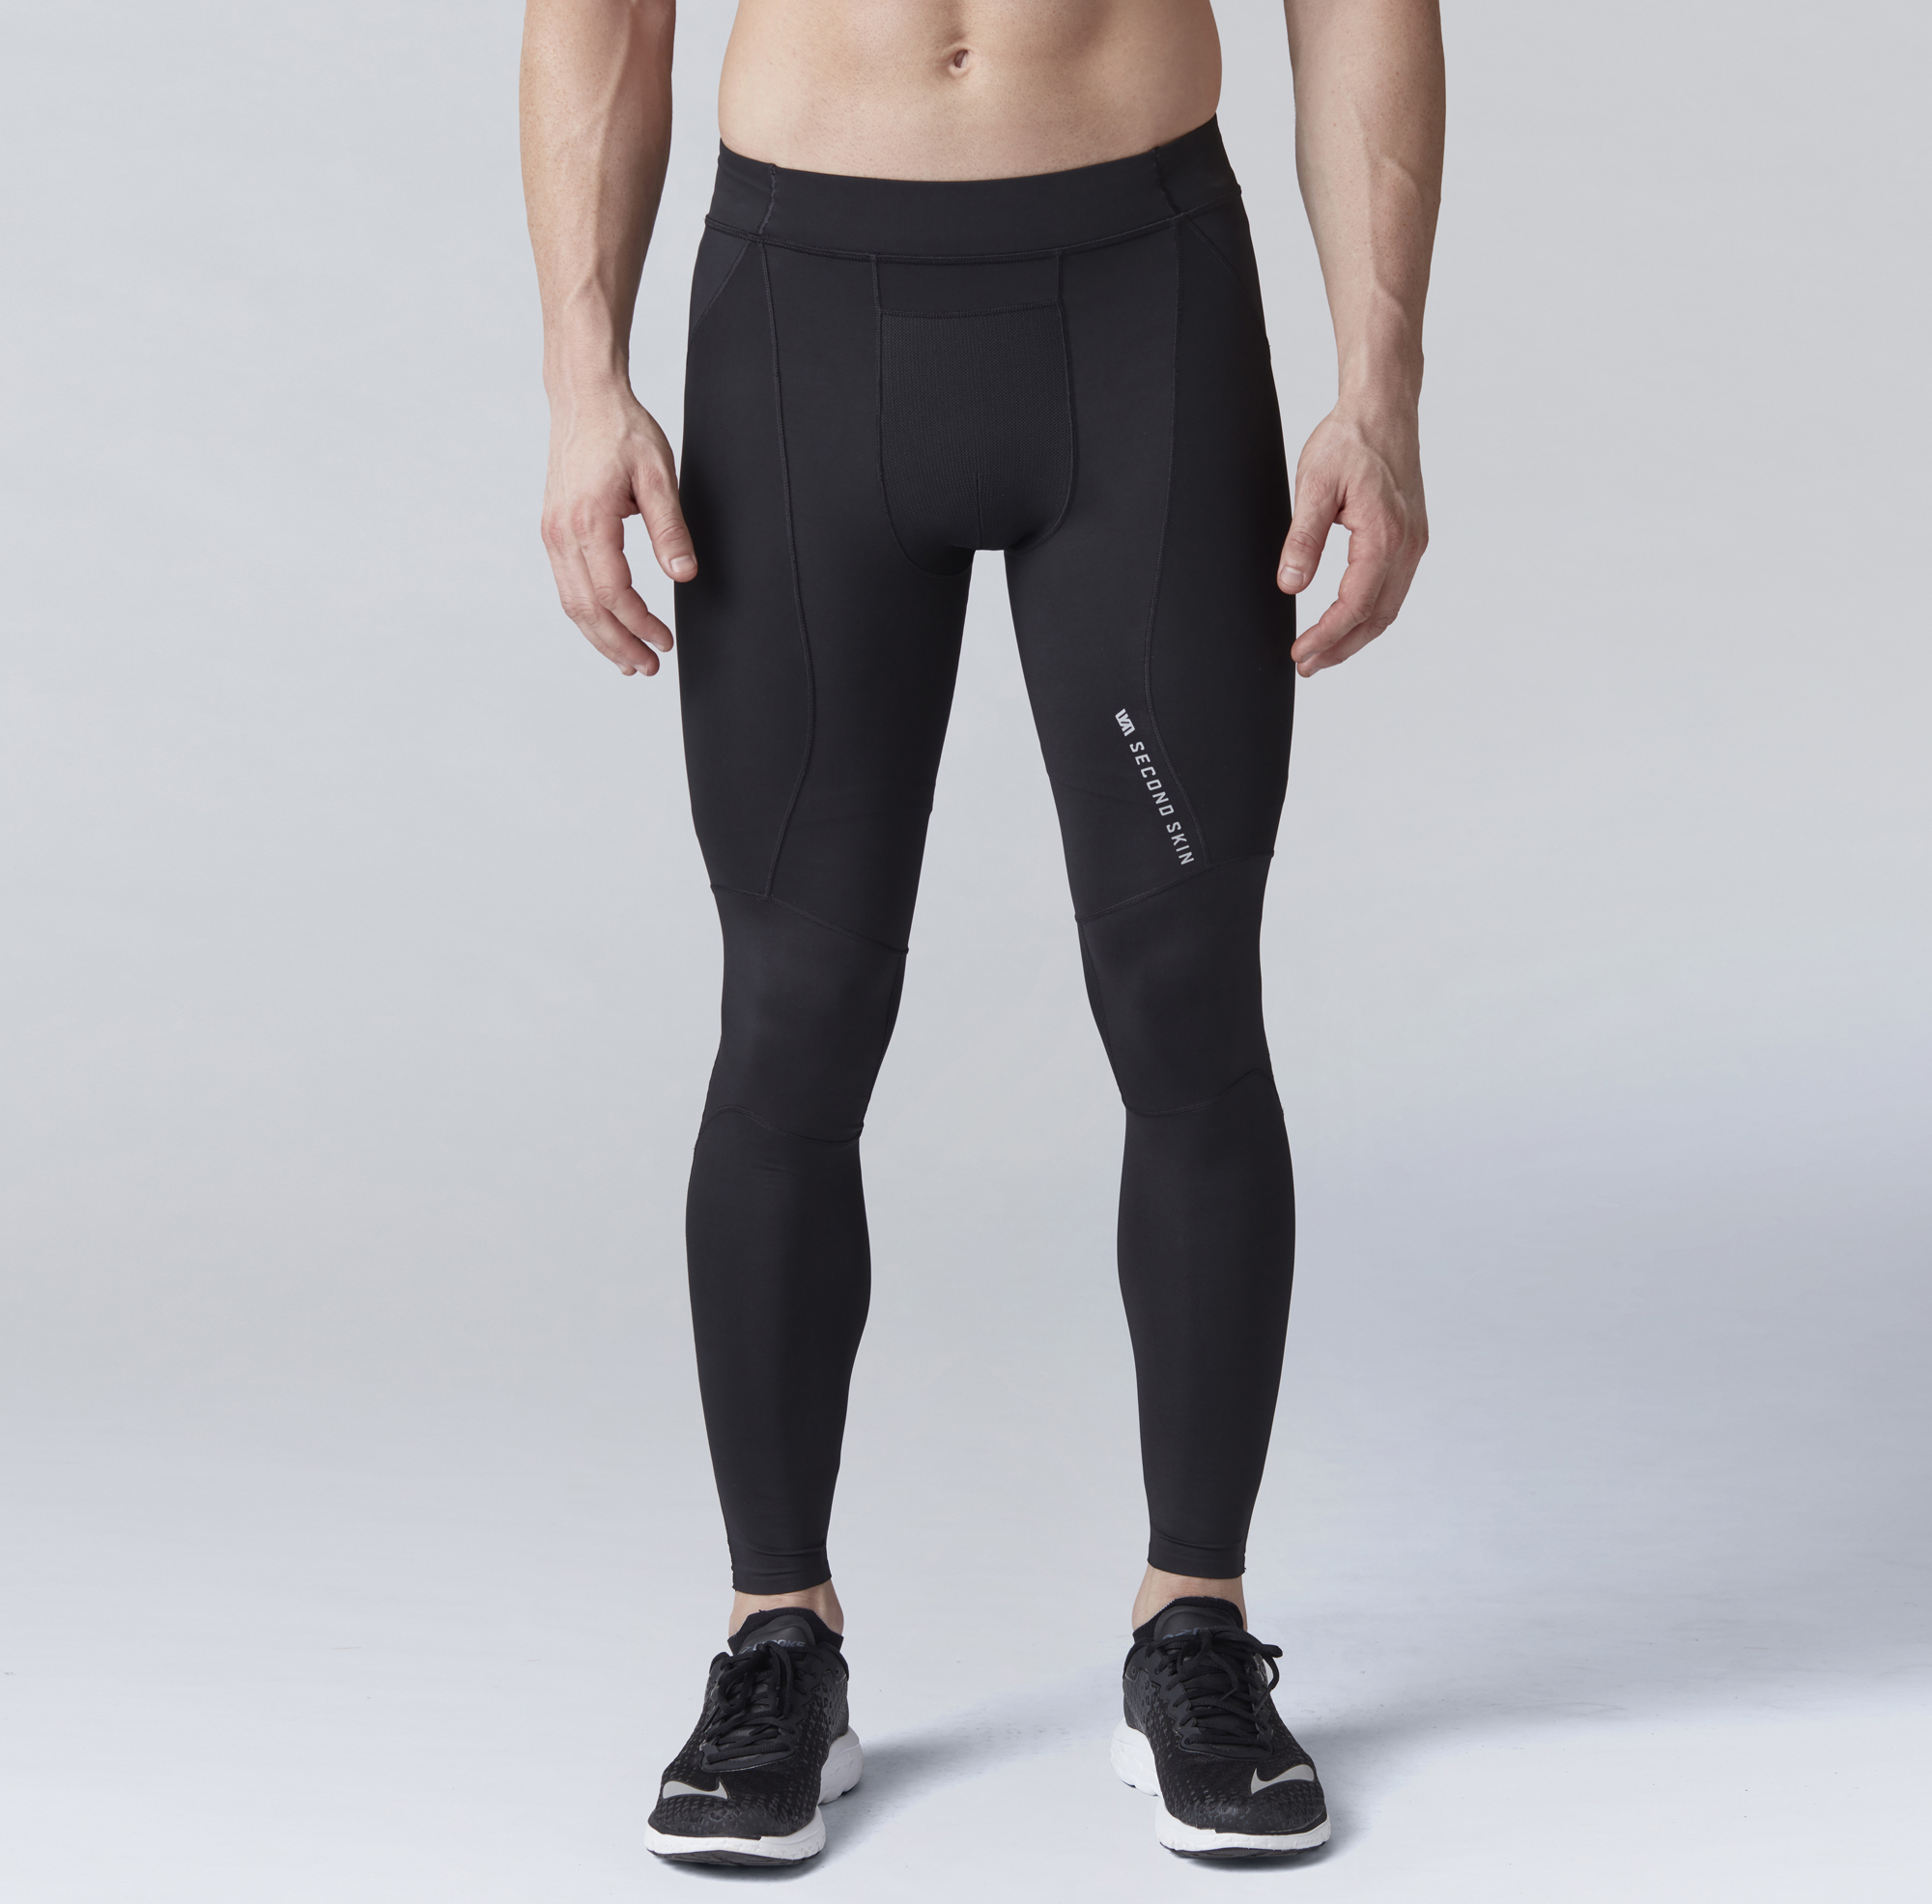 9283a5190a1096 Second Skin QUATROFLX Compression Tights Second Skin. A lot of dudes wear  workout ...